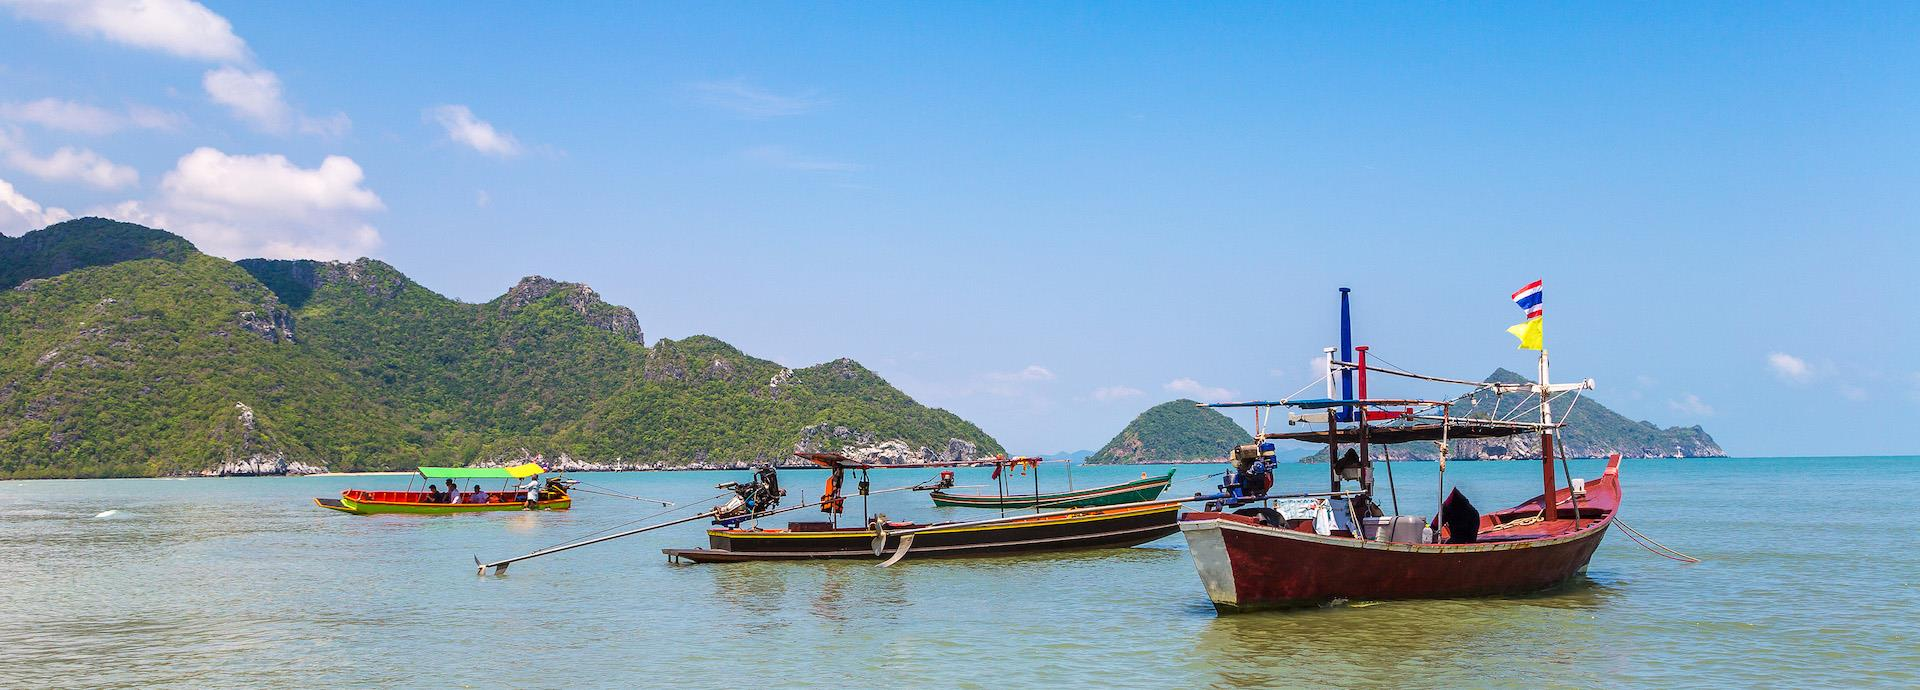 Traditional fishing boats off the coast of Thailand